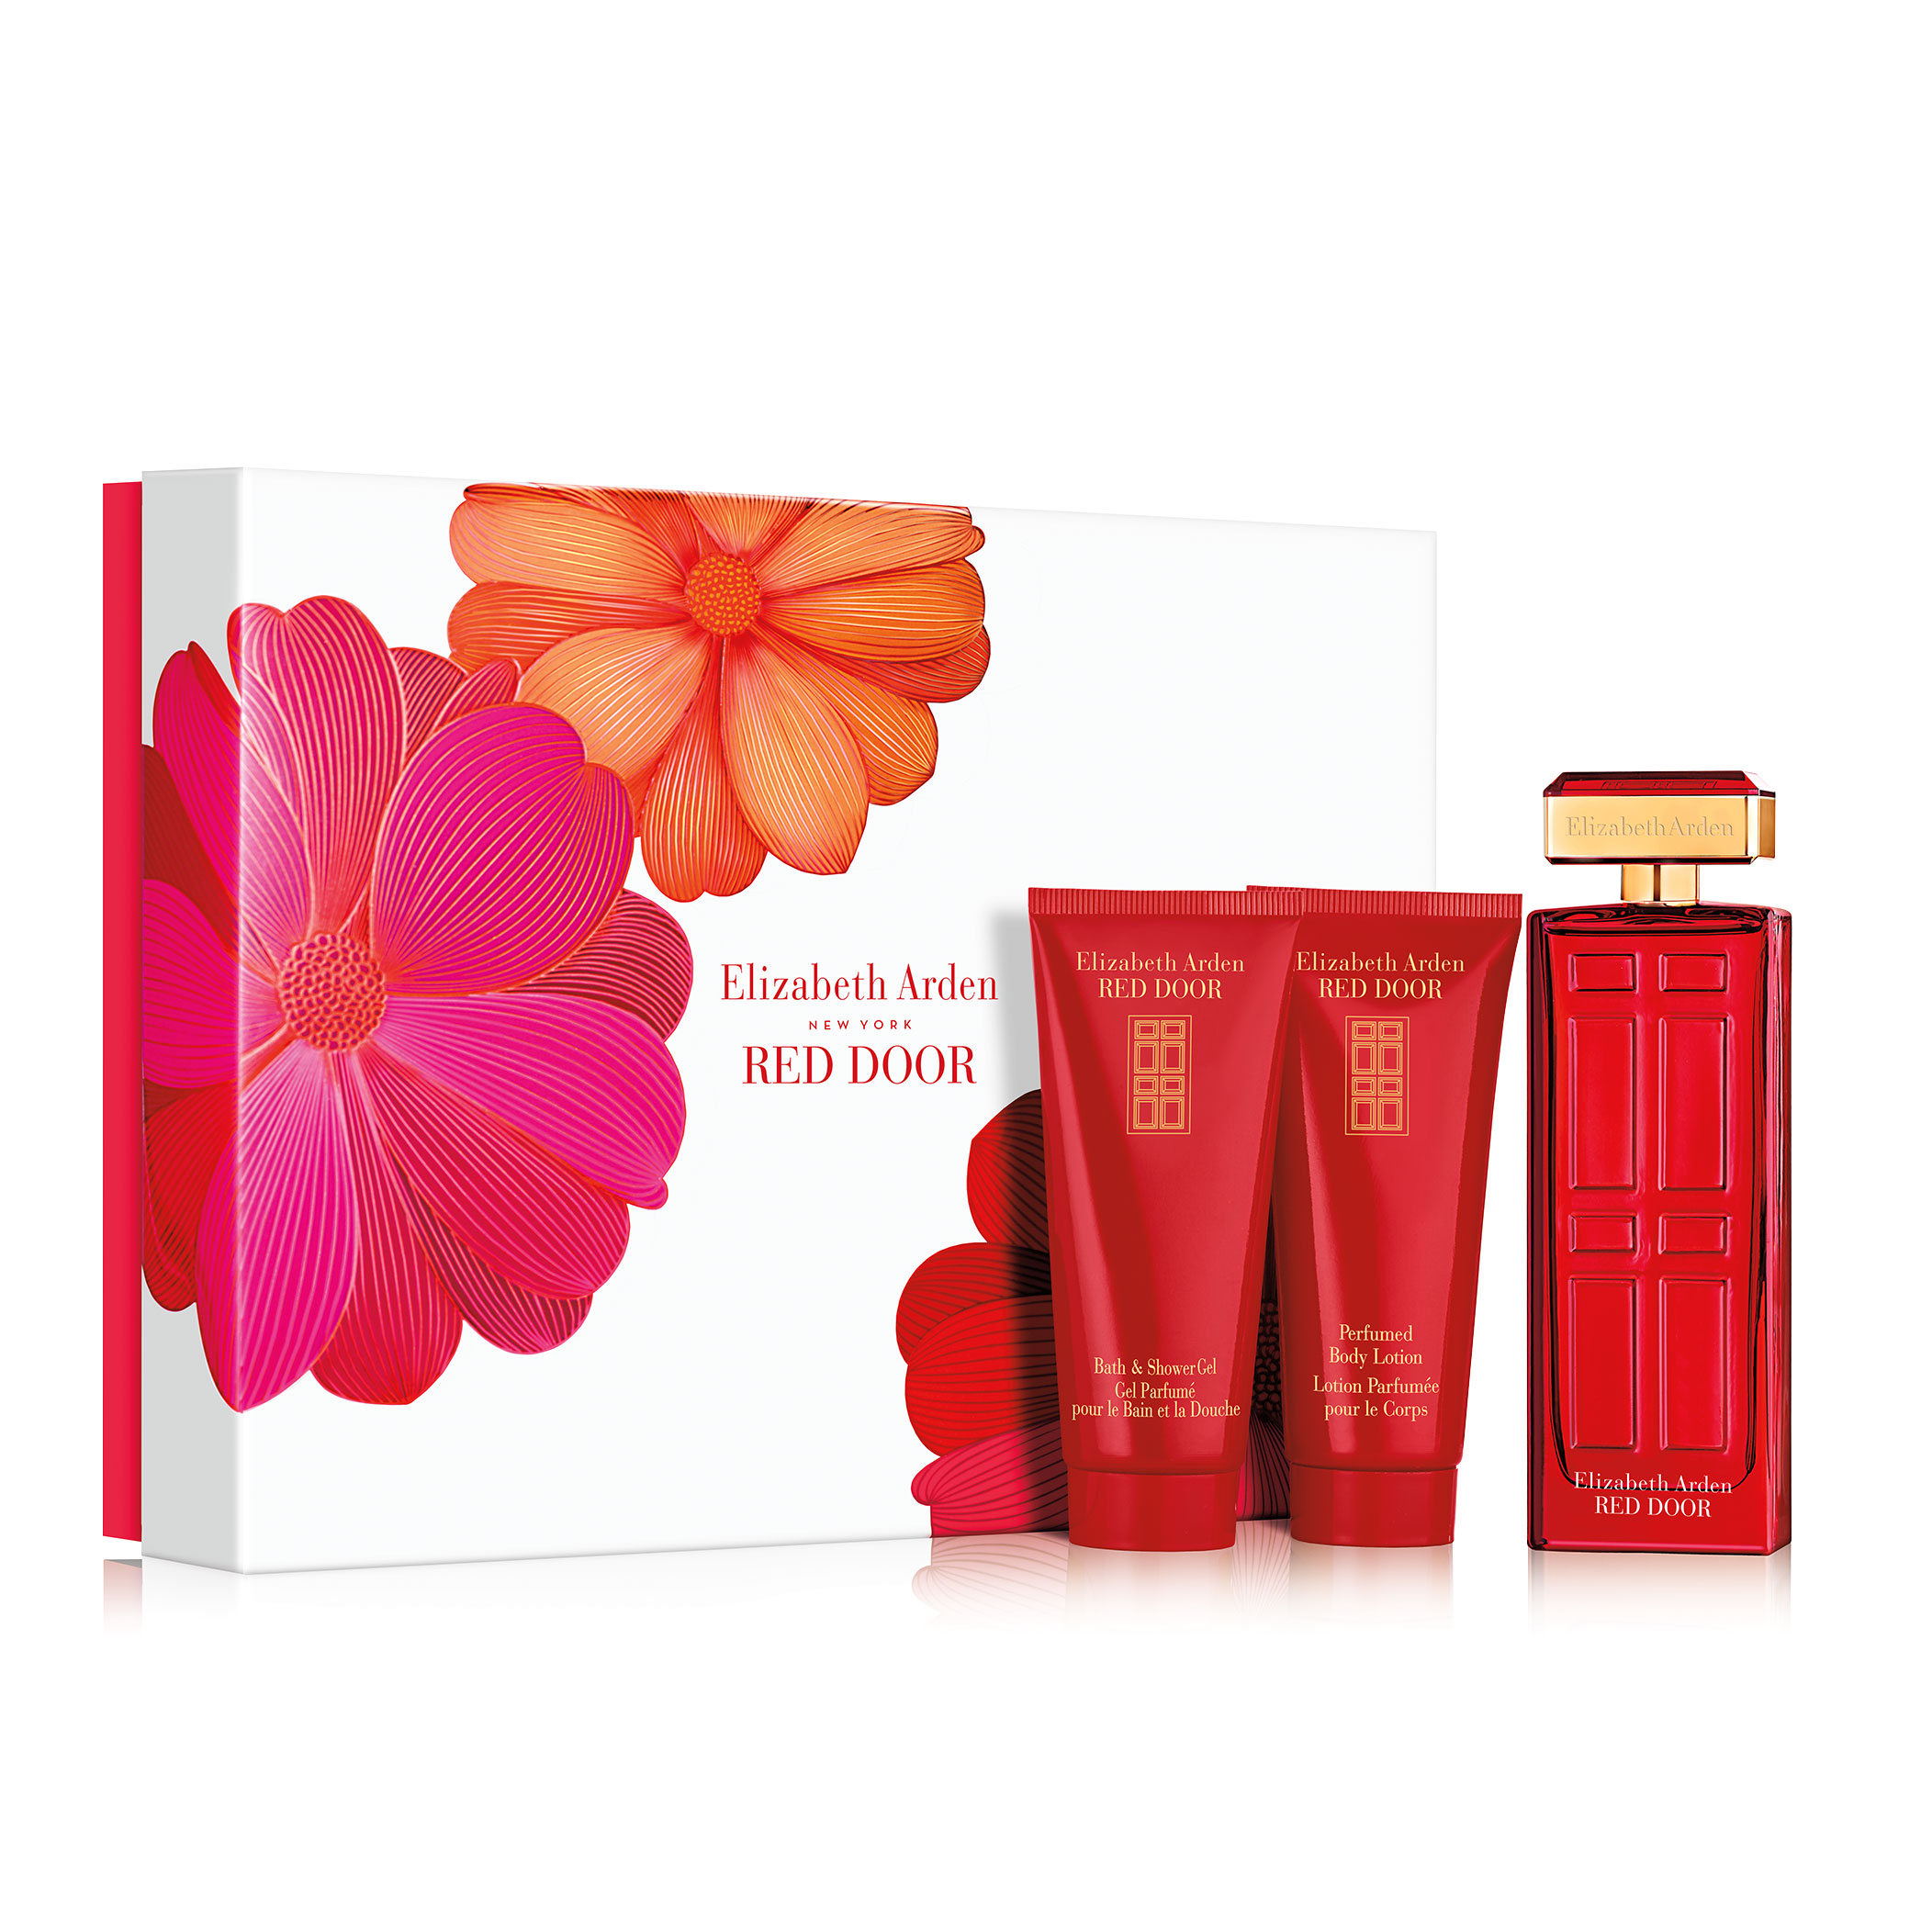 Red Door Signature Collection A 100 Value Elizabeth Arden